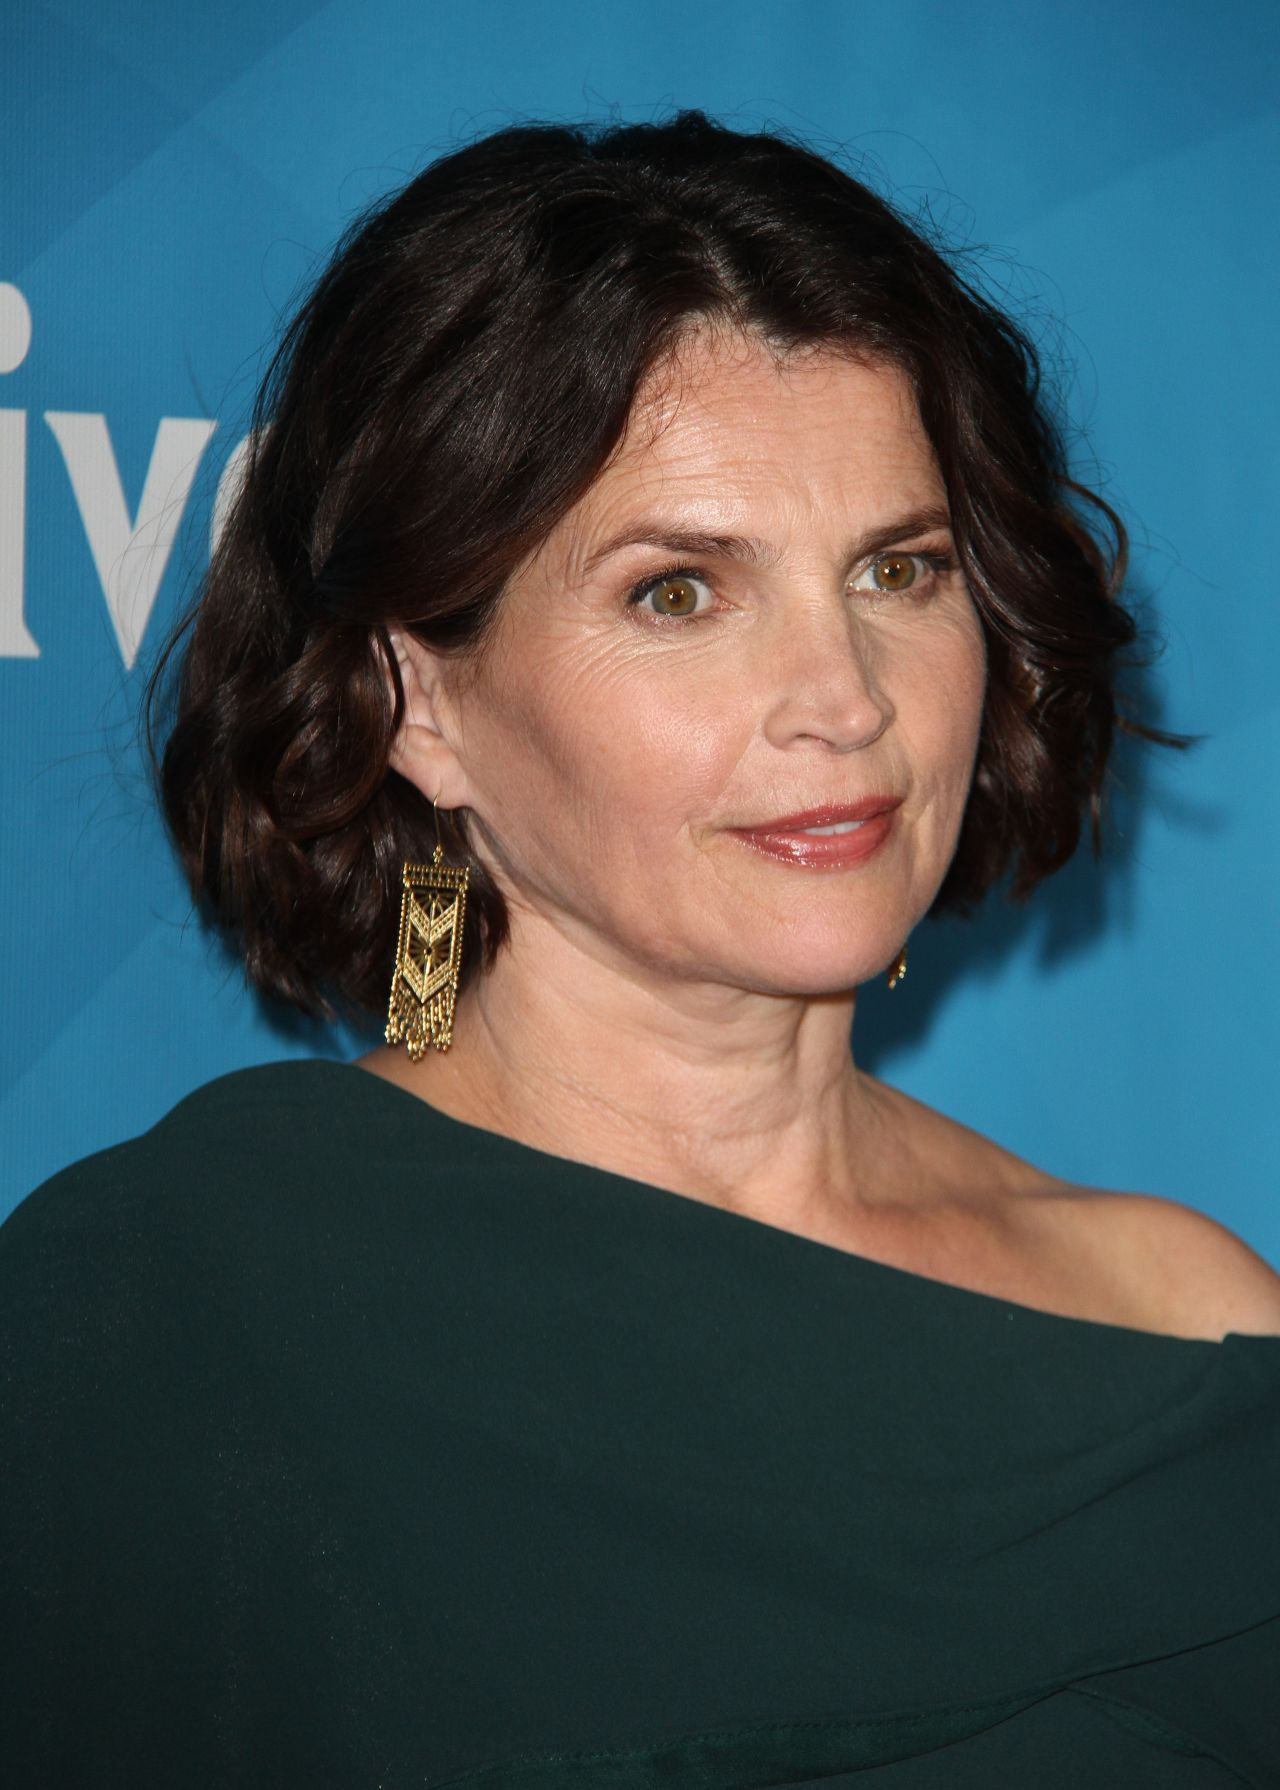 Julia Ormond Height Weight Body Measurements Bra Size Age: NBCUniversal Press Day